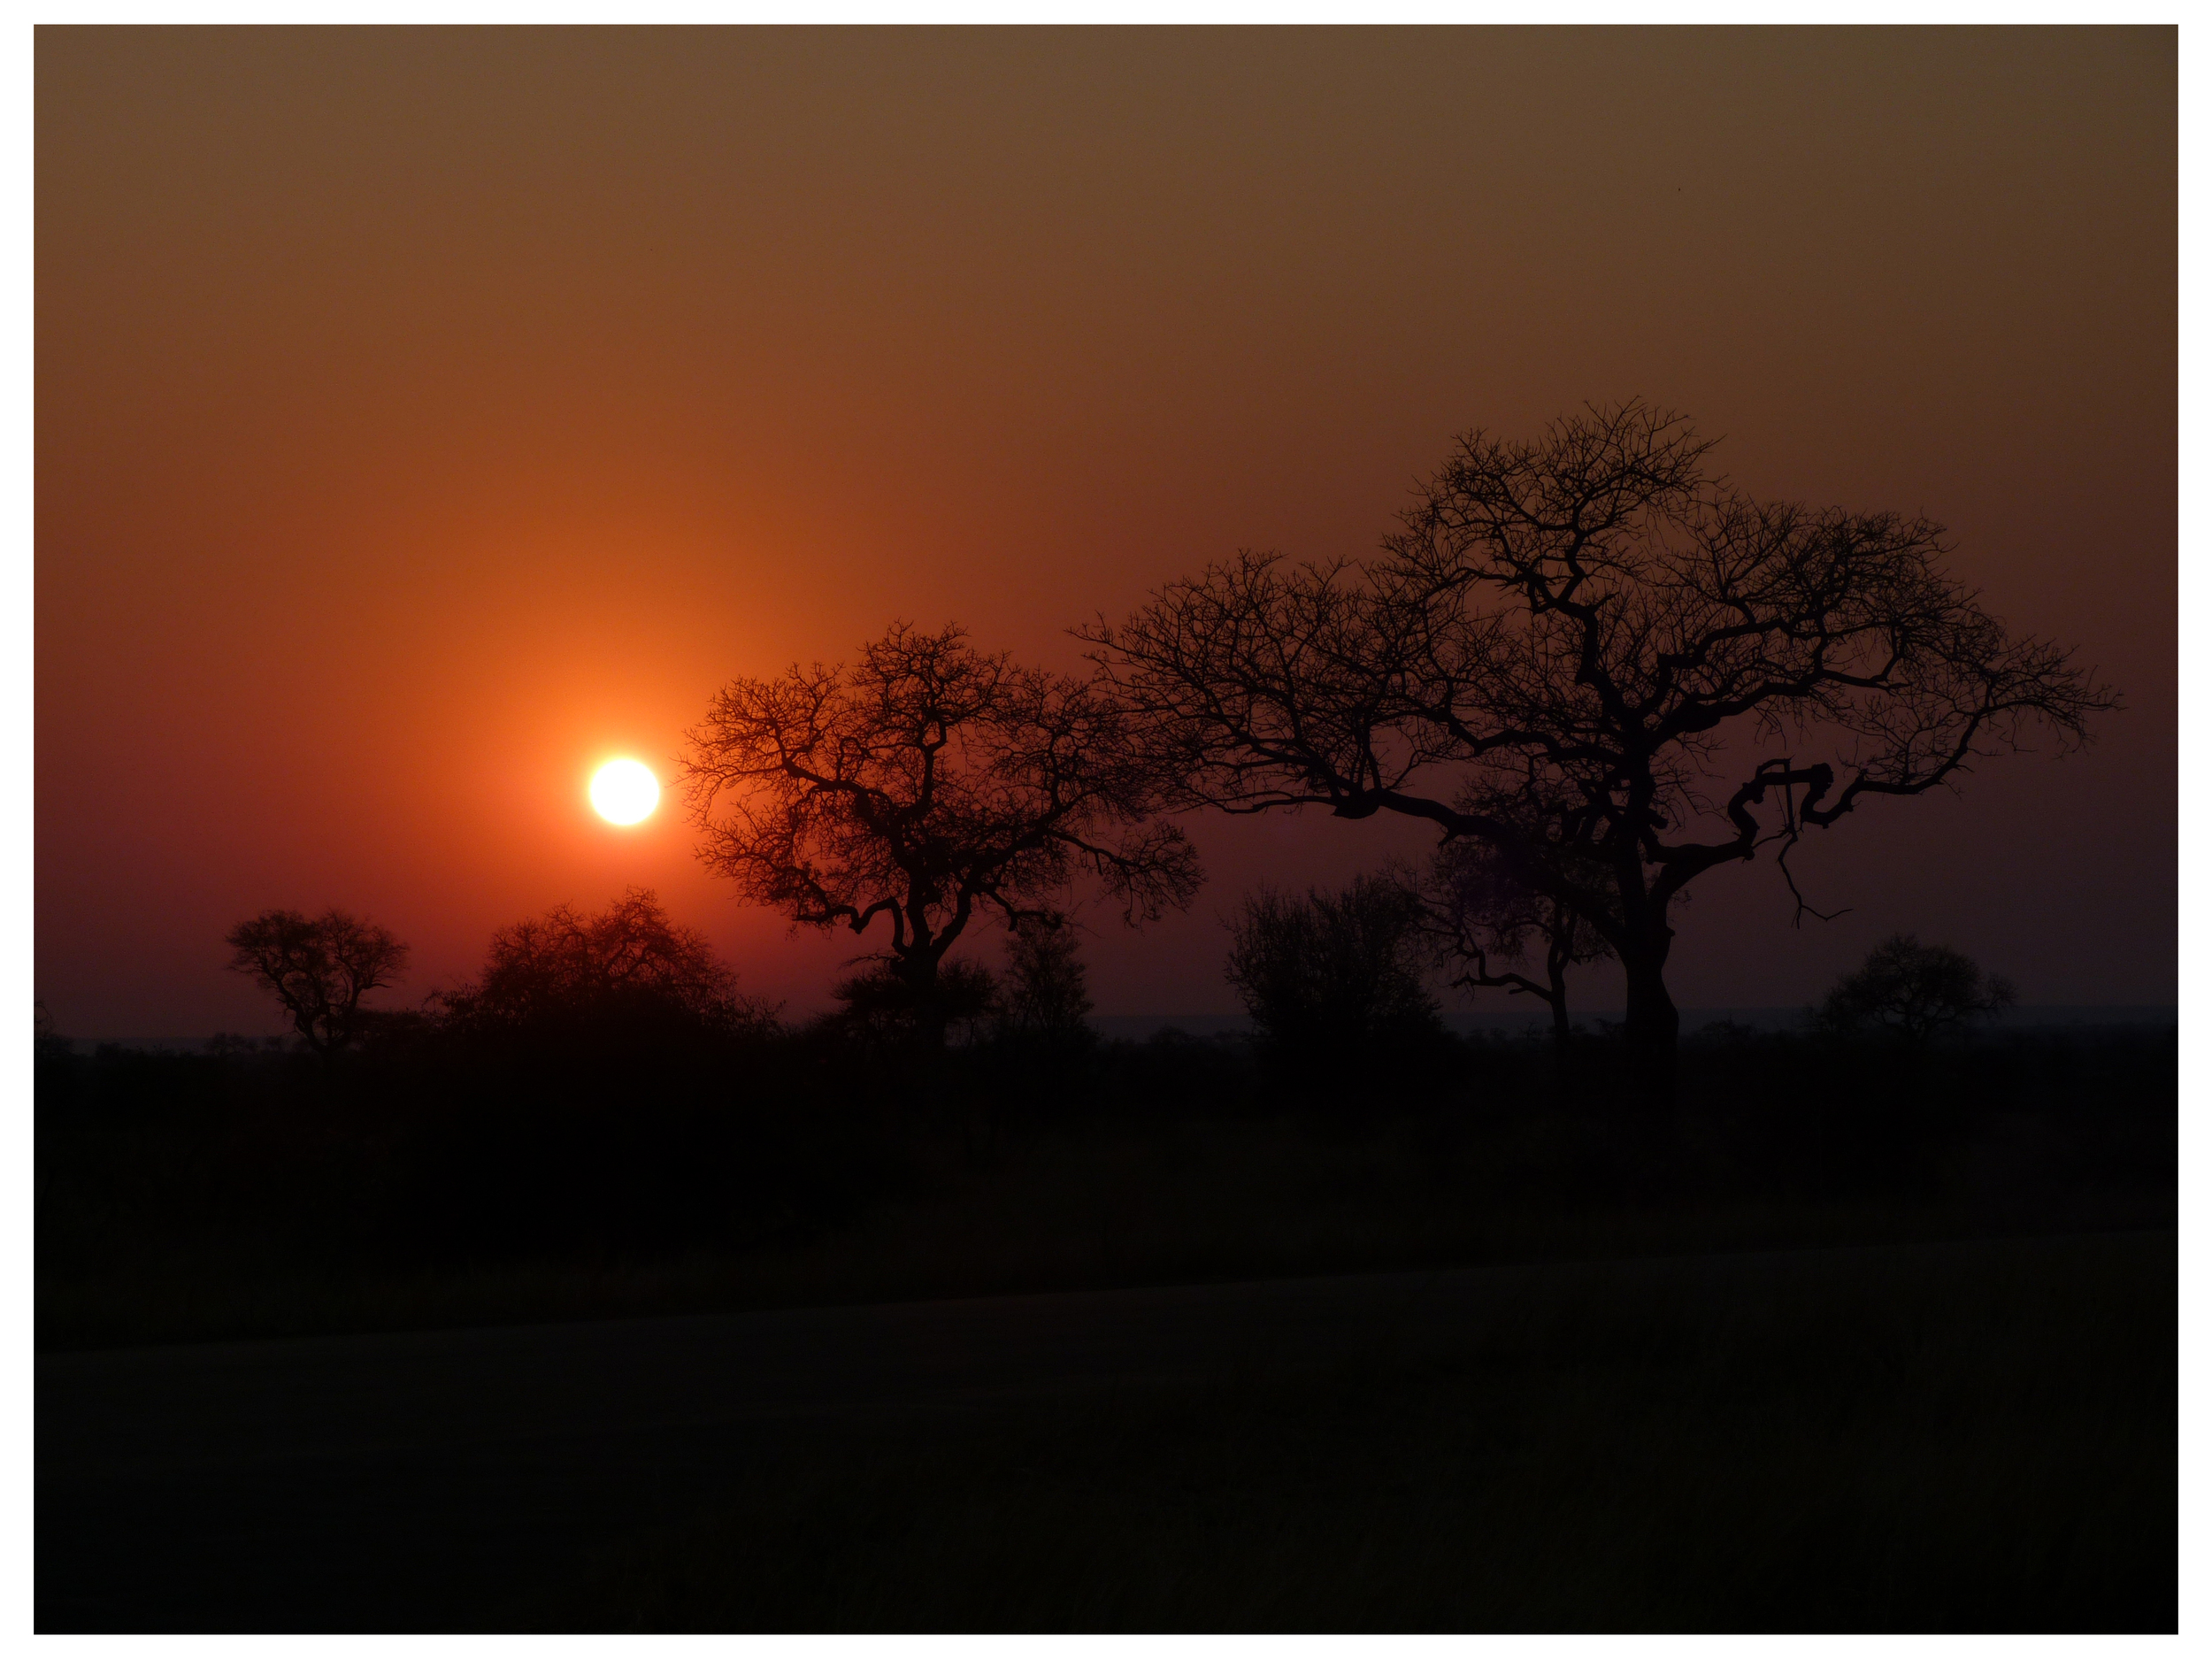 Near Satara, Kruger National Park